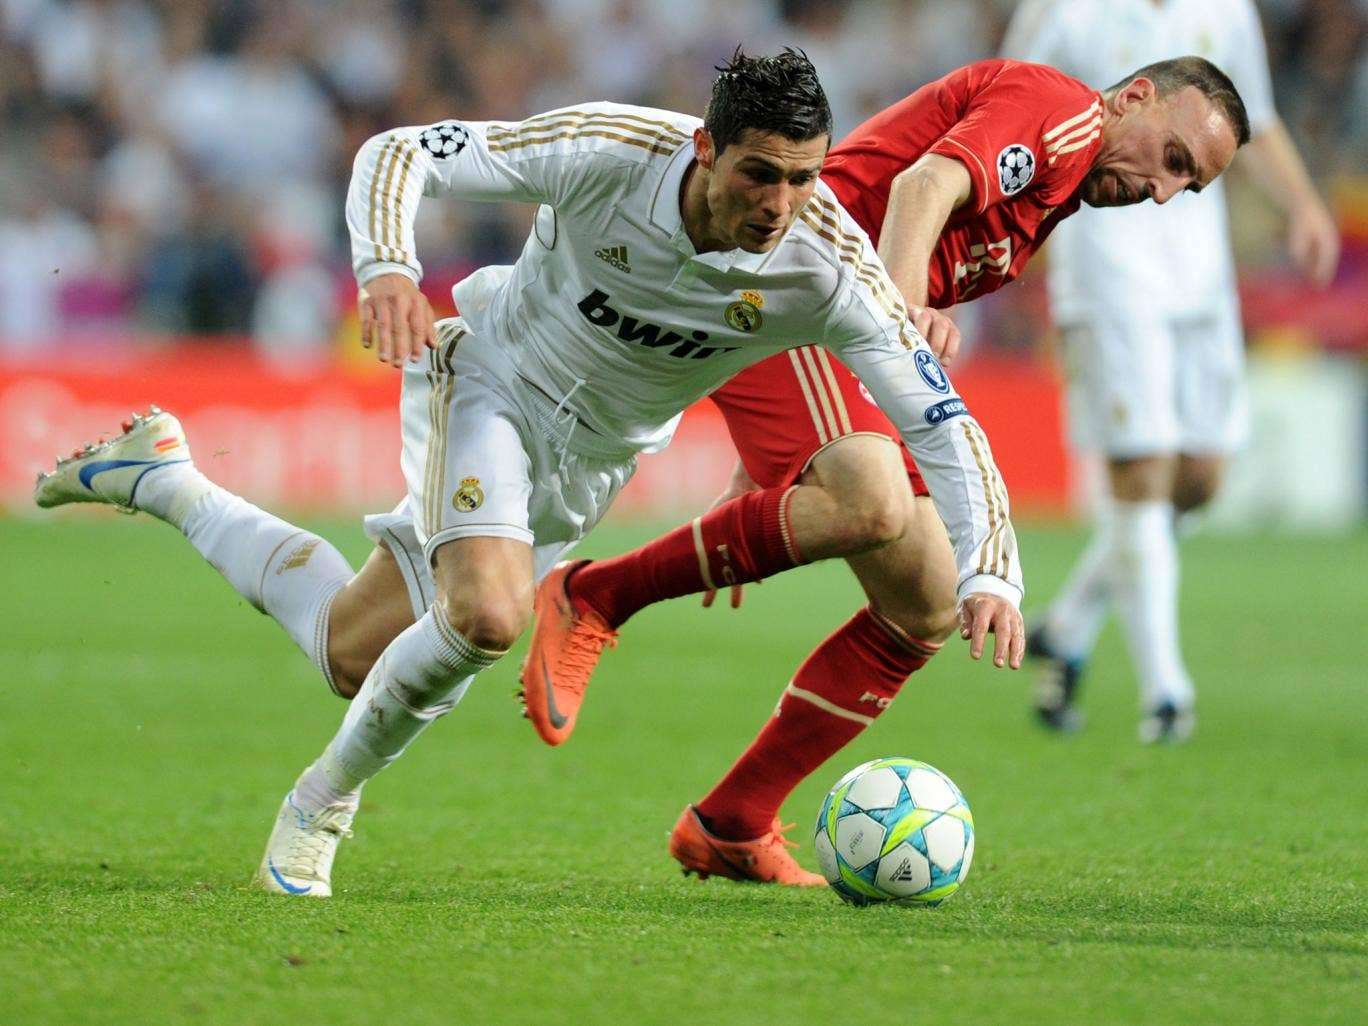 Cristiano Ronaldo and Franck Ribery jostle for the ball during Real Madrid's match against Bayern Munich